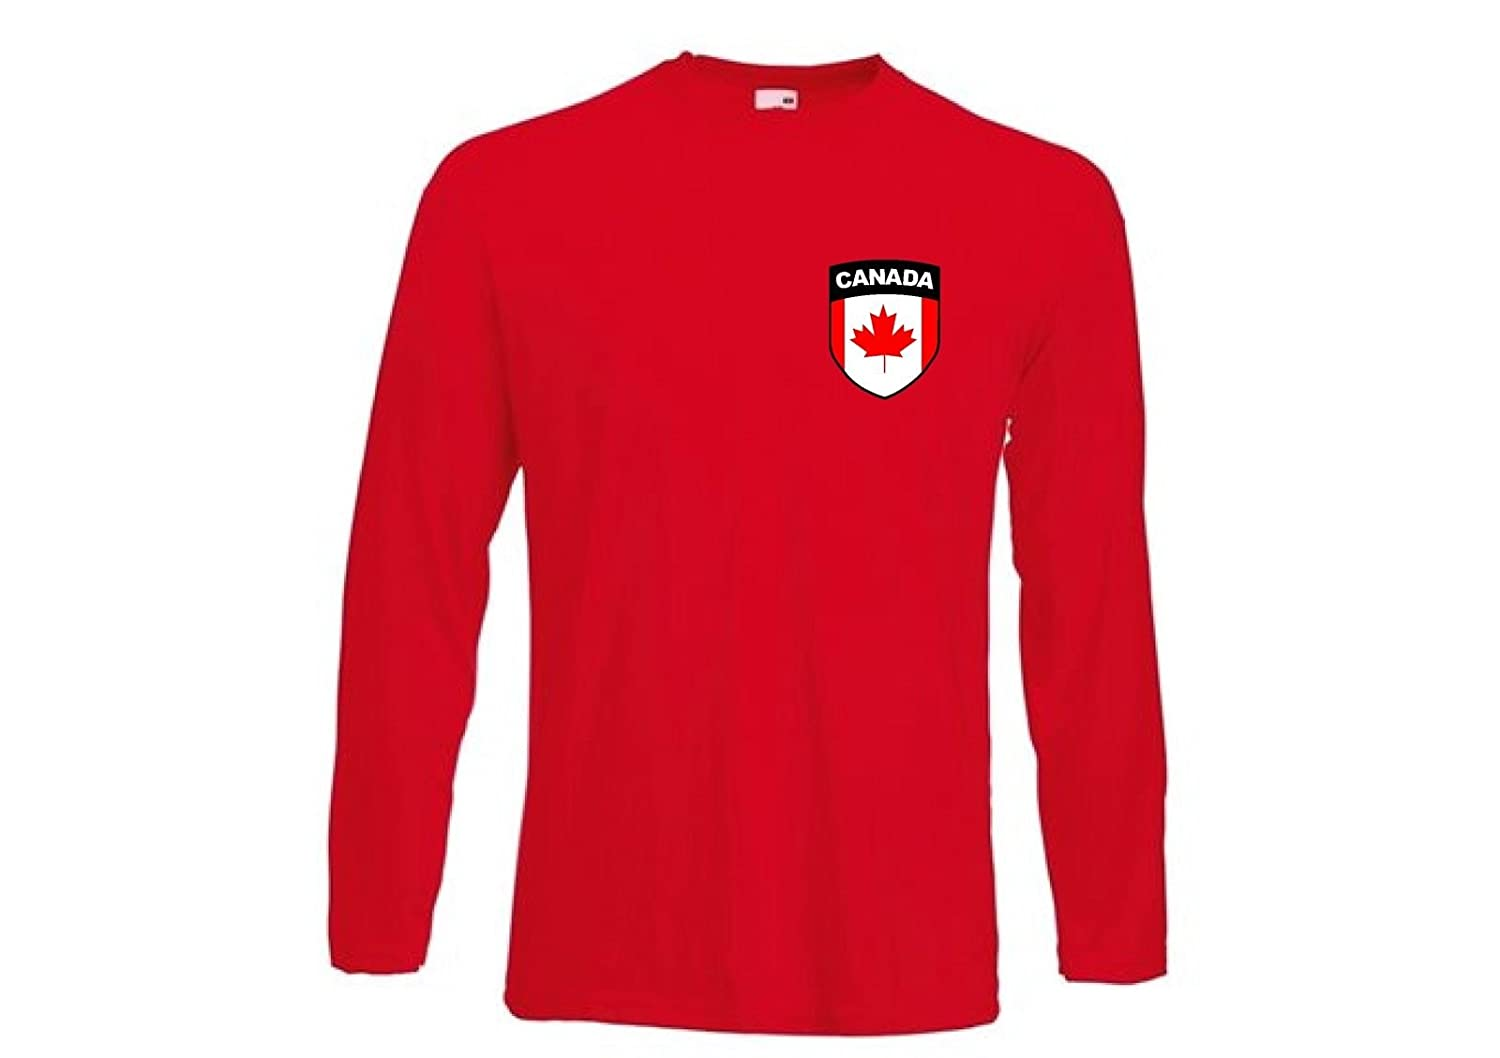 Amazon.com : Camiseta Hombre Canada F?tbol Hockey Hielo Manga Larga - Todas Las Tallas : Sports & Outdoors